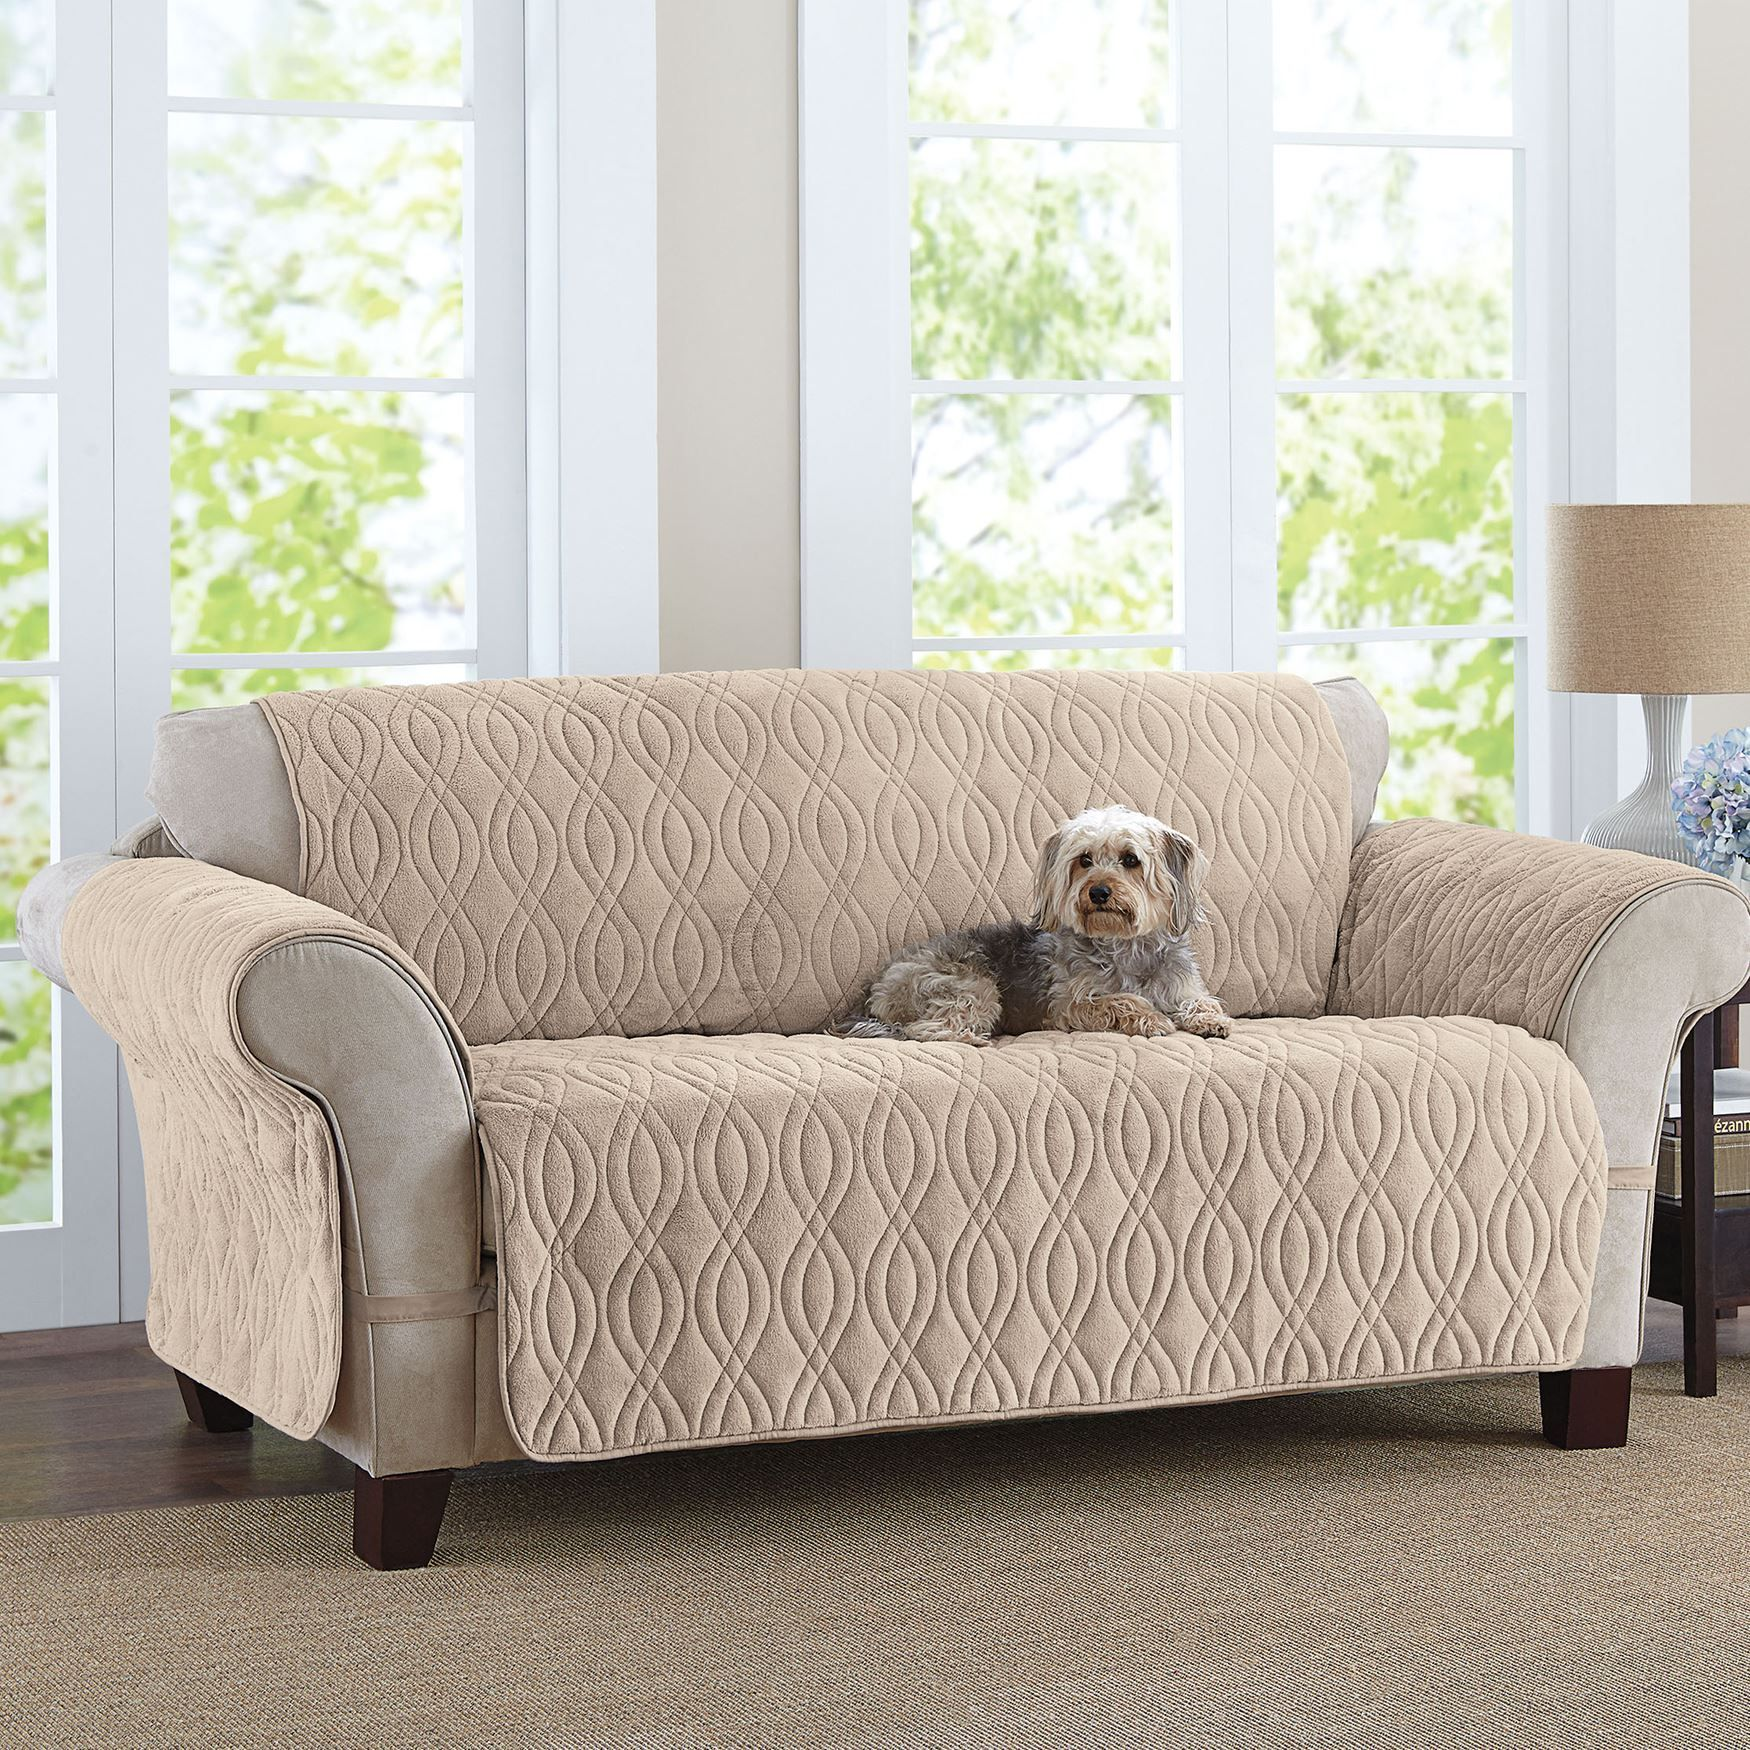 Pet Furniture Covers For Sectional Sofas Leather Albany Ny Sofa Pets Elegant Waterproof Couch